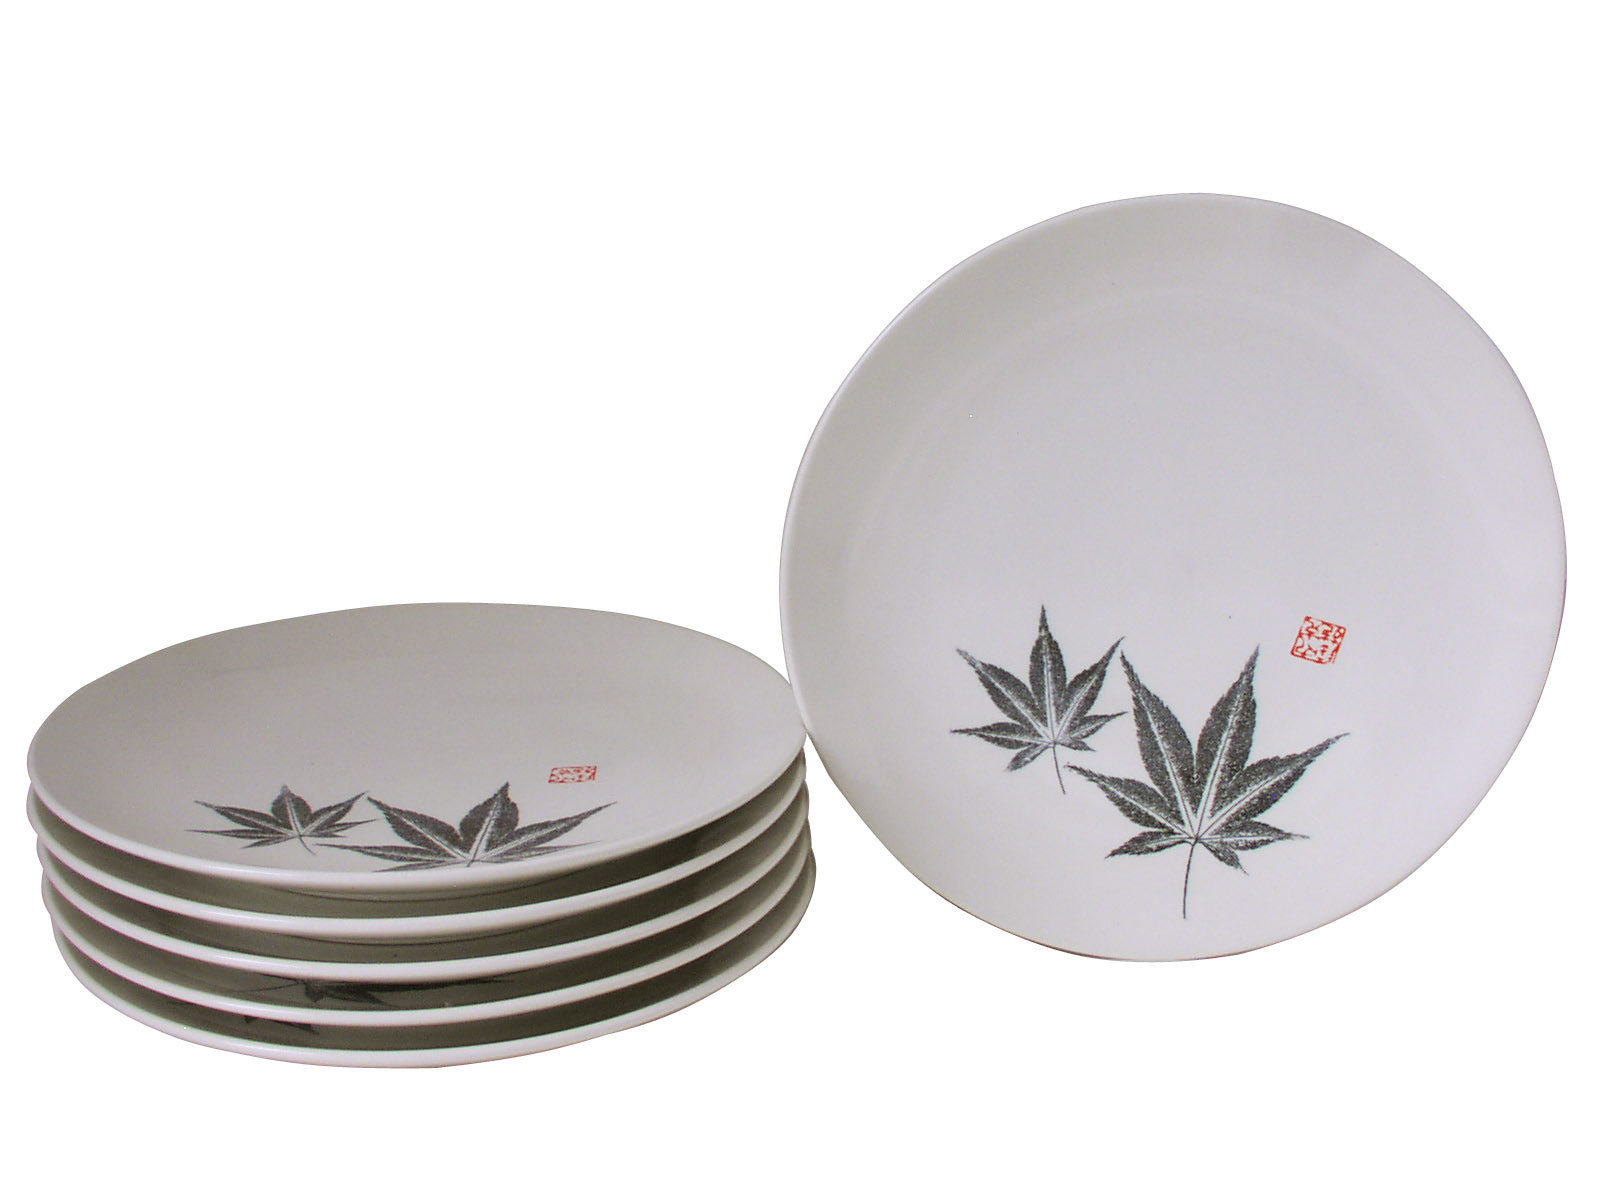 Amber Glow Japanese Maple Asian Dinnerware Plates Set for Six  sc 1 st  Mrs. Lin\u0027s Kitchen & Glow Japanese Maple Asian Dinnerware Plates Set for Six